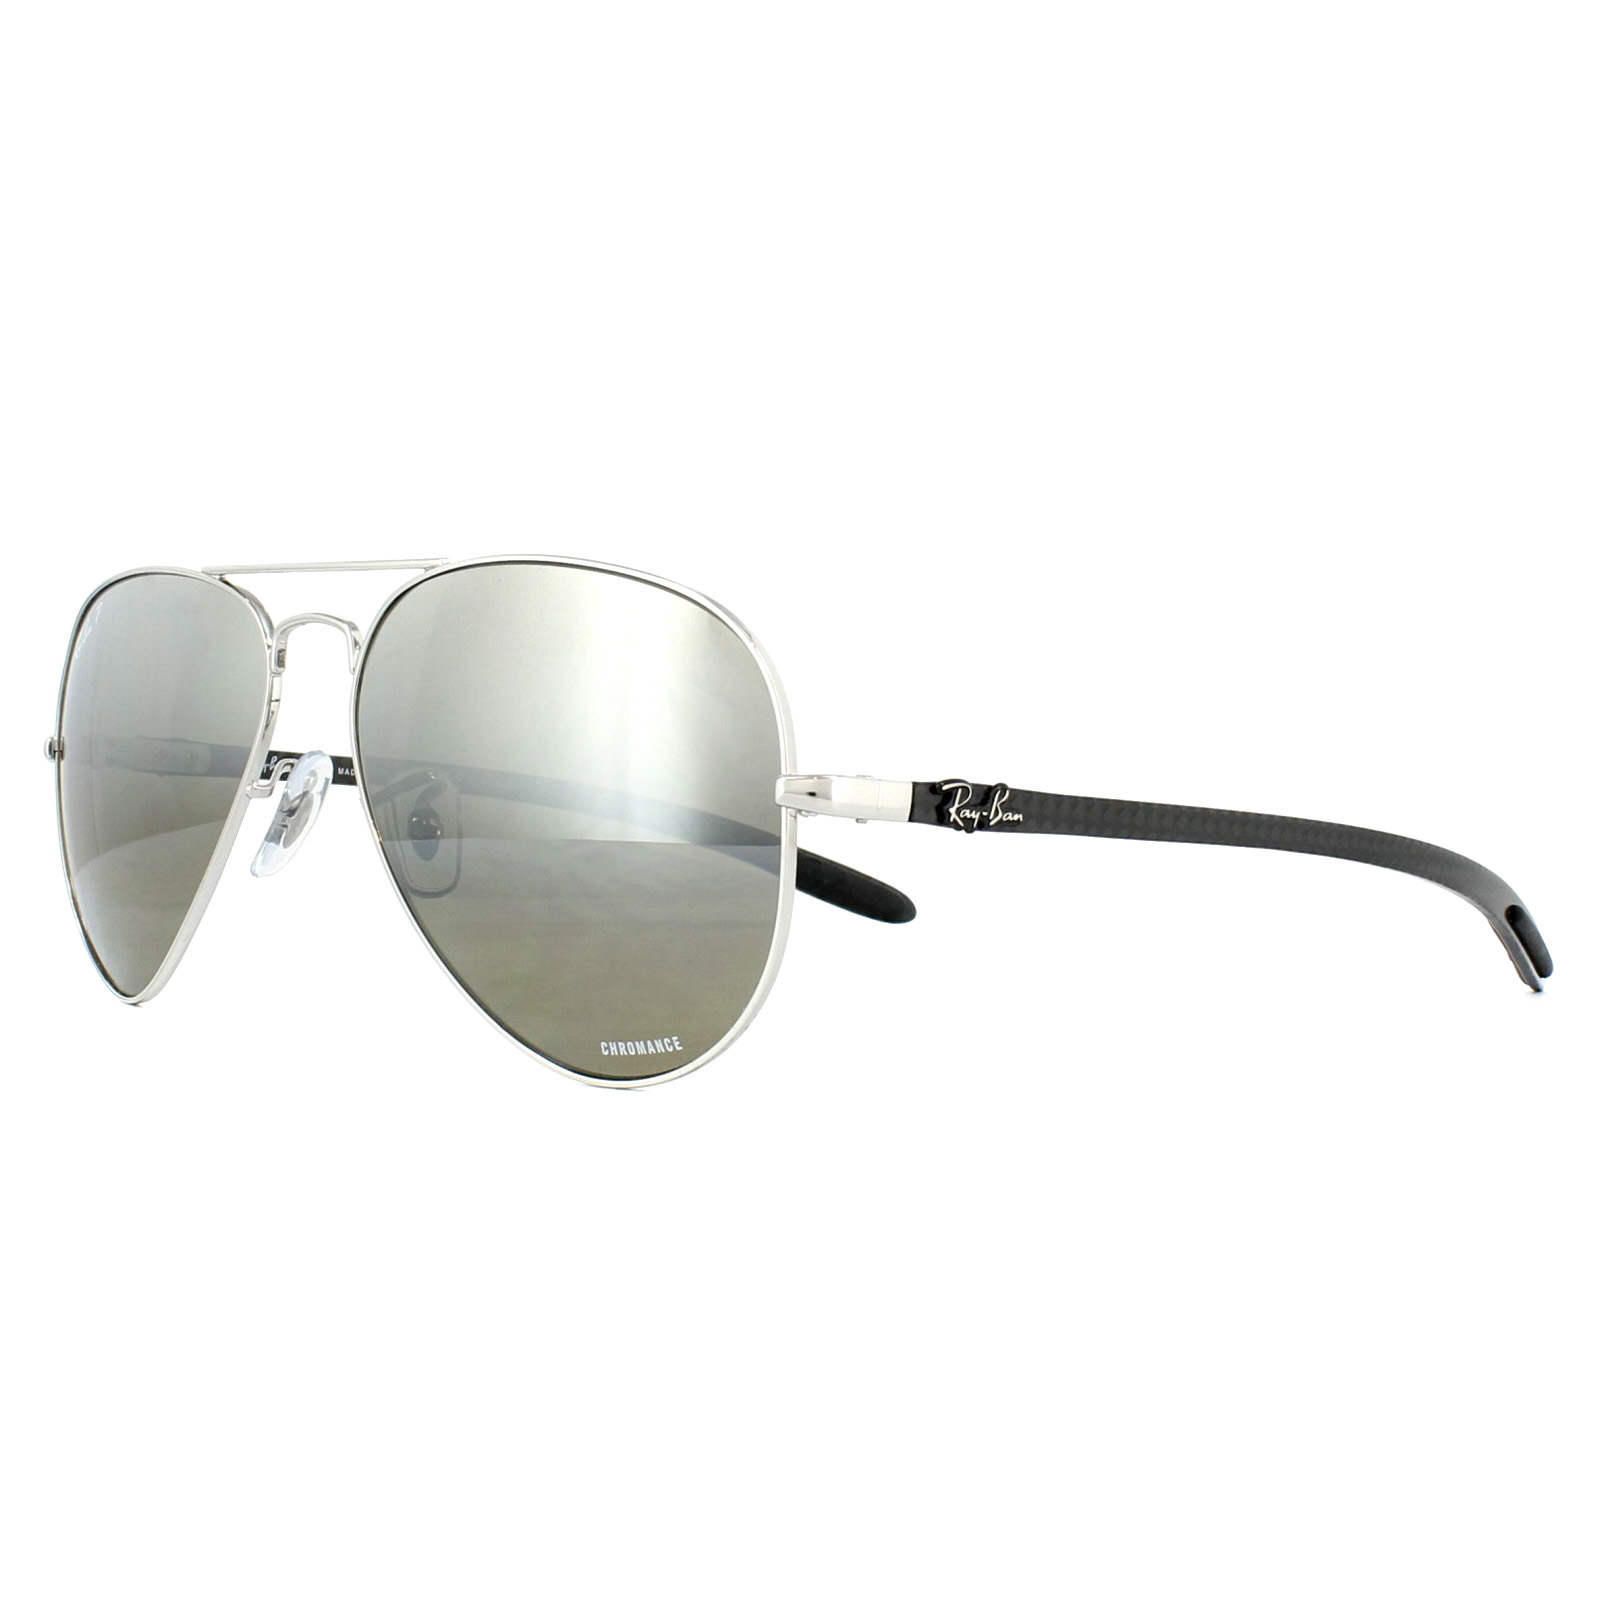 3102158712 Sentinel Ray-Ban Sunglasses RB8317CH 003 5J Silver Silver Mirror Polarized  Chromance